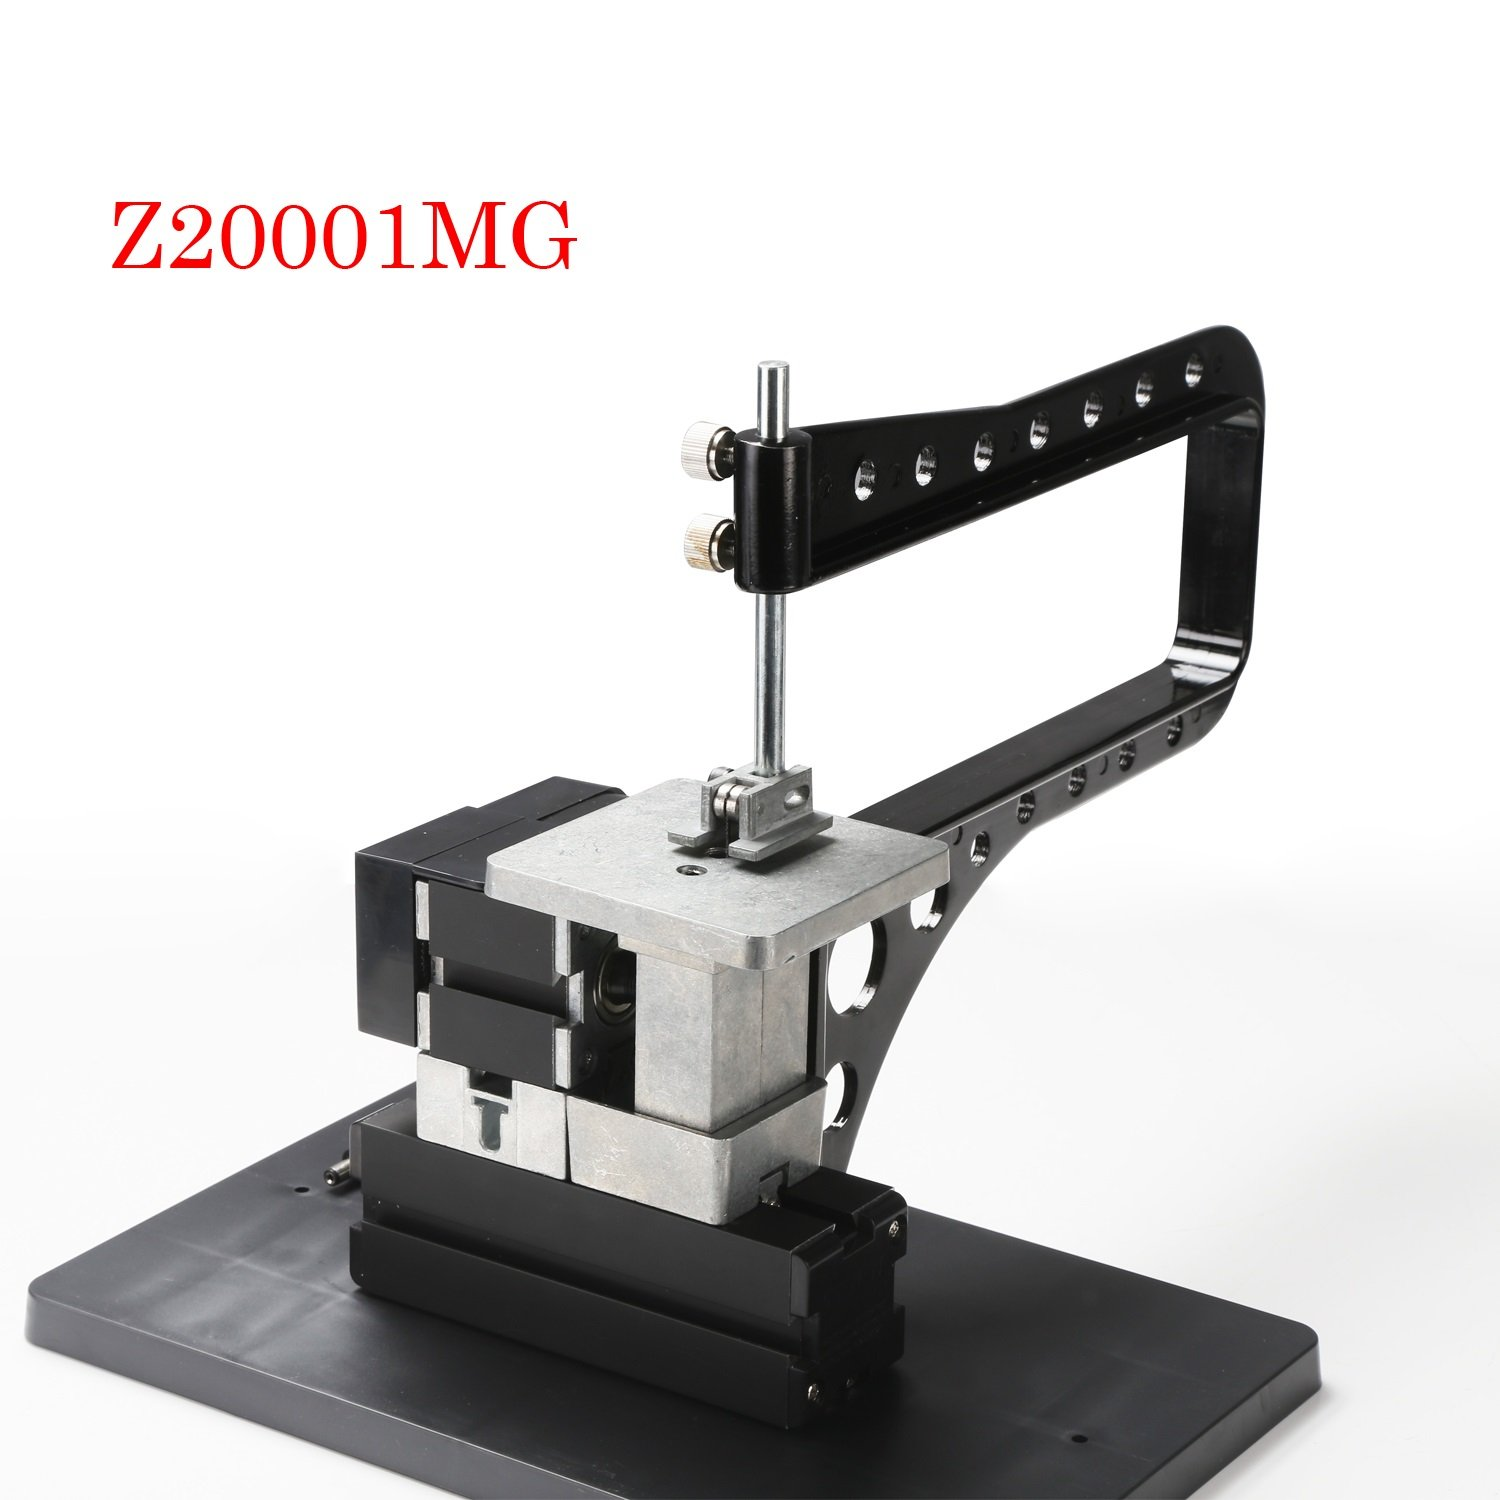 Metal Working Lathe DIY Woodworking Mini 24W Metal Jigsaw Cutting Machine With Bow Arm For Puzzle Cutting Woodworking